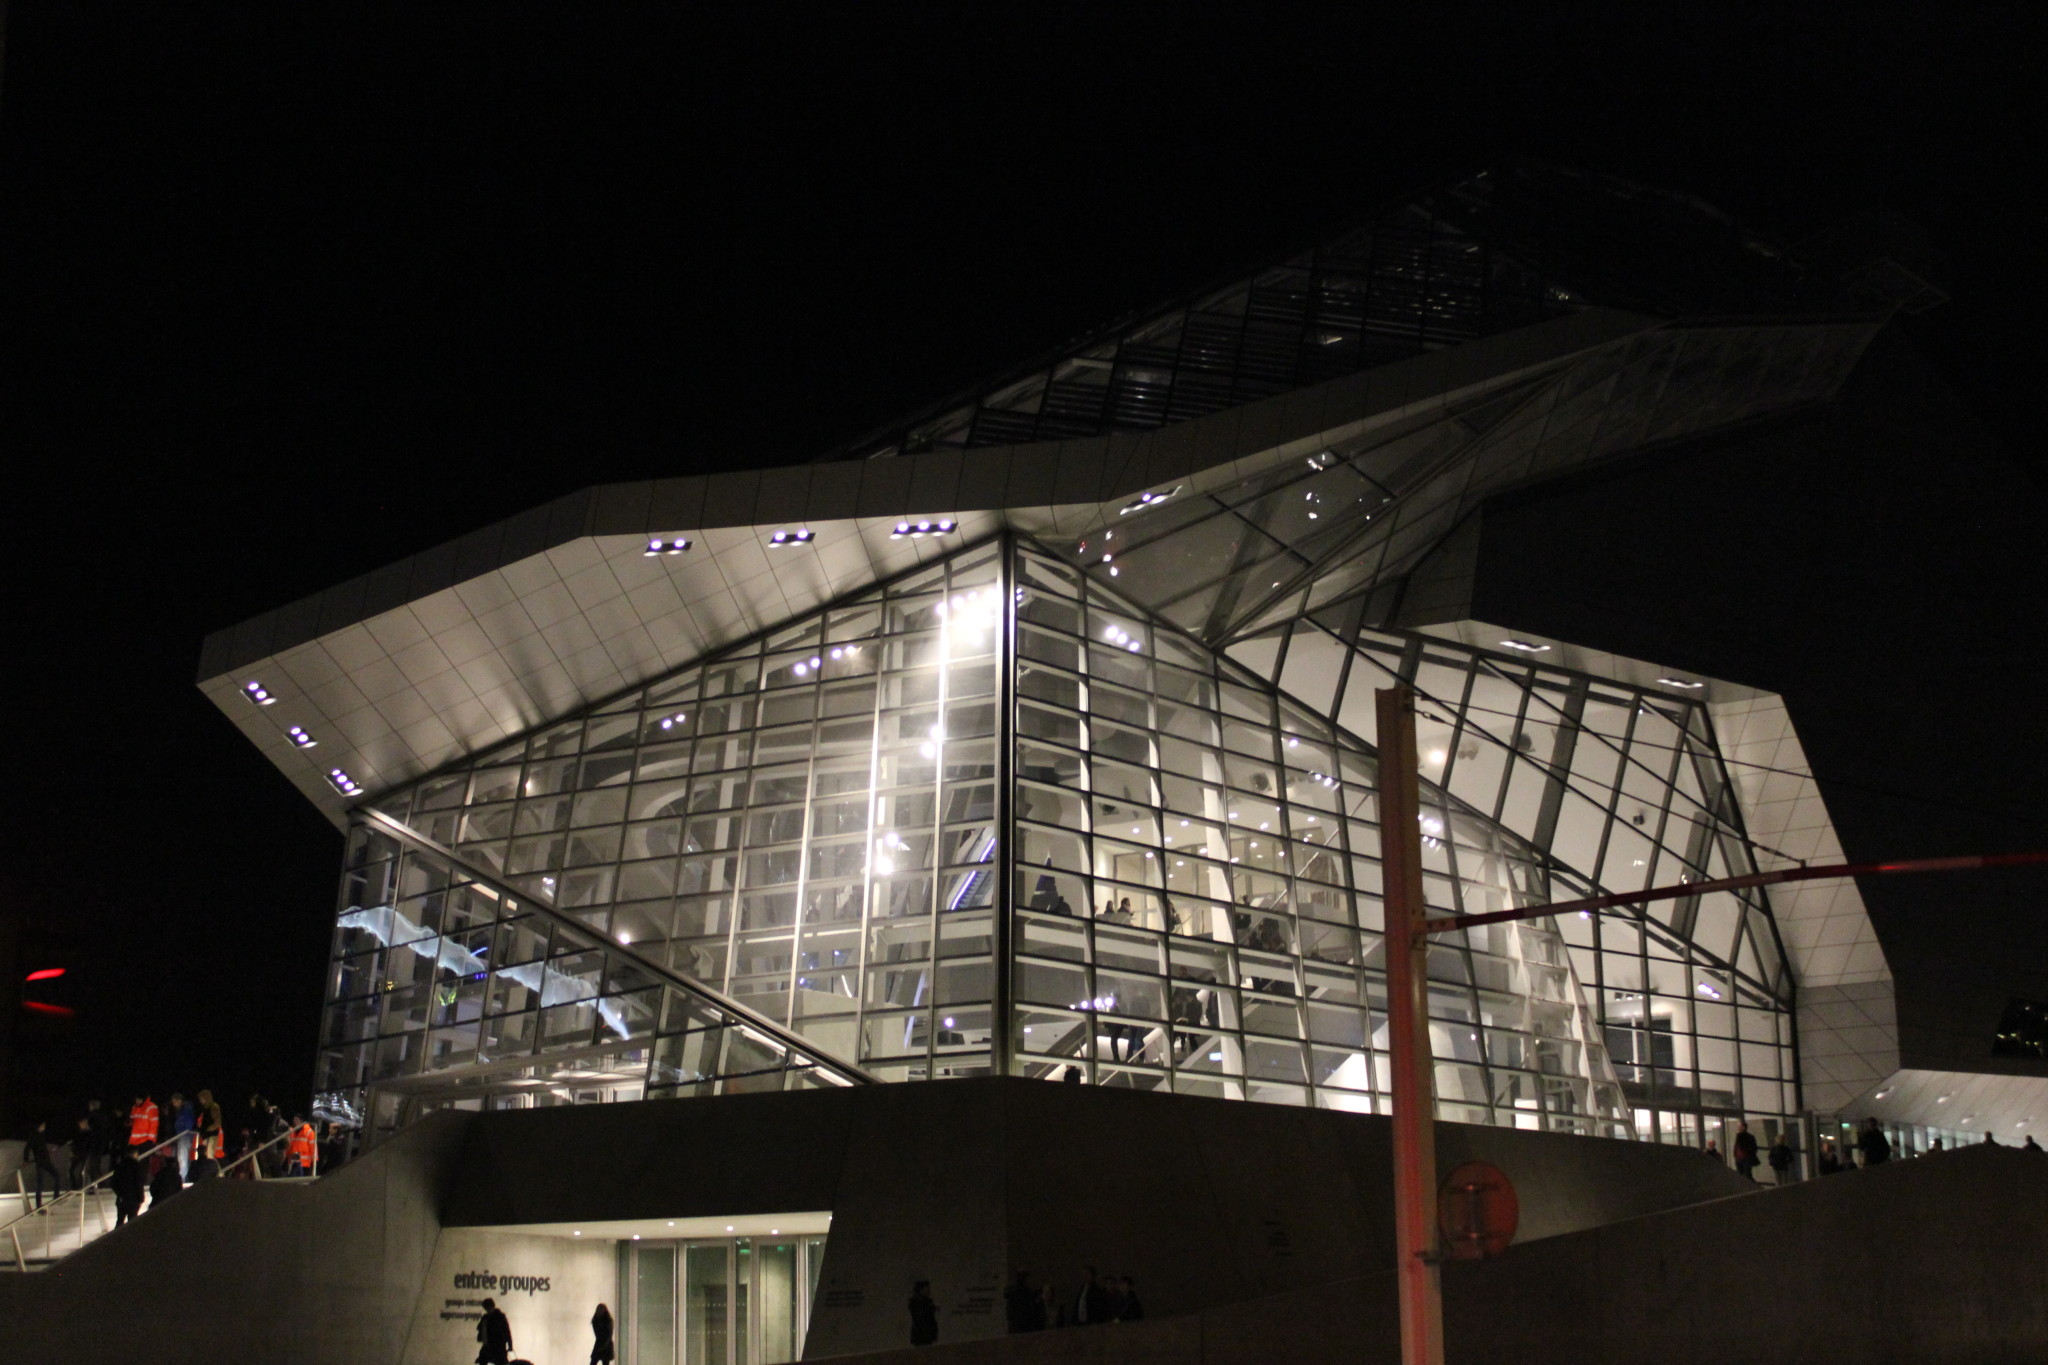 Musee des Confluances by night